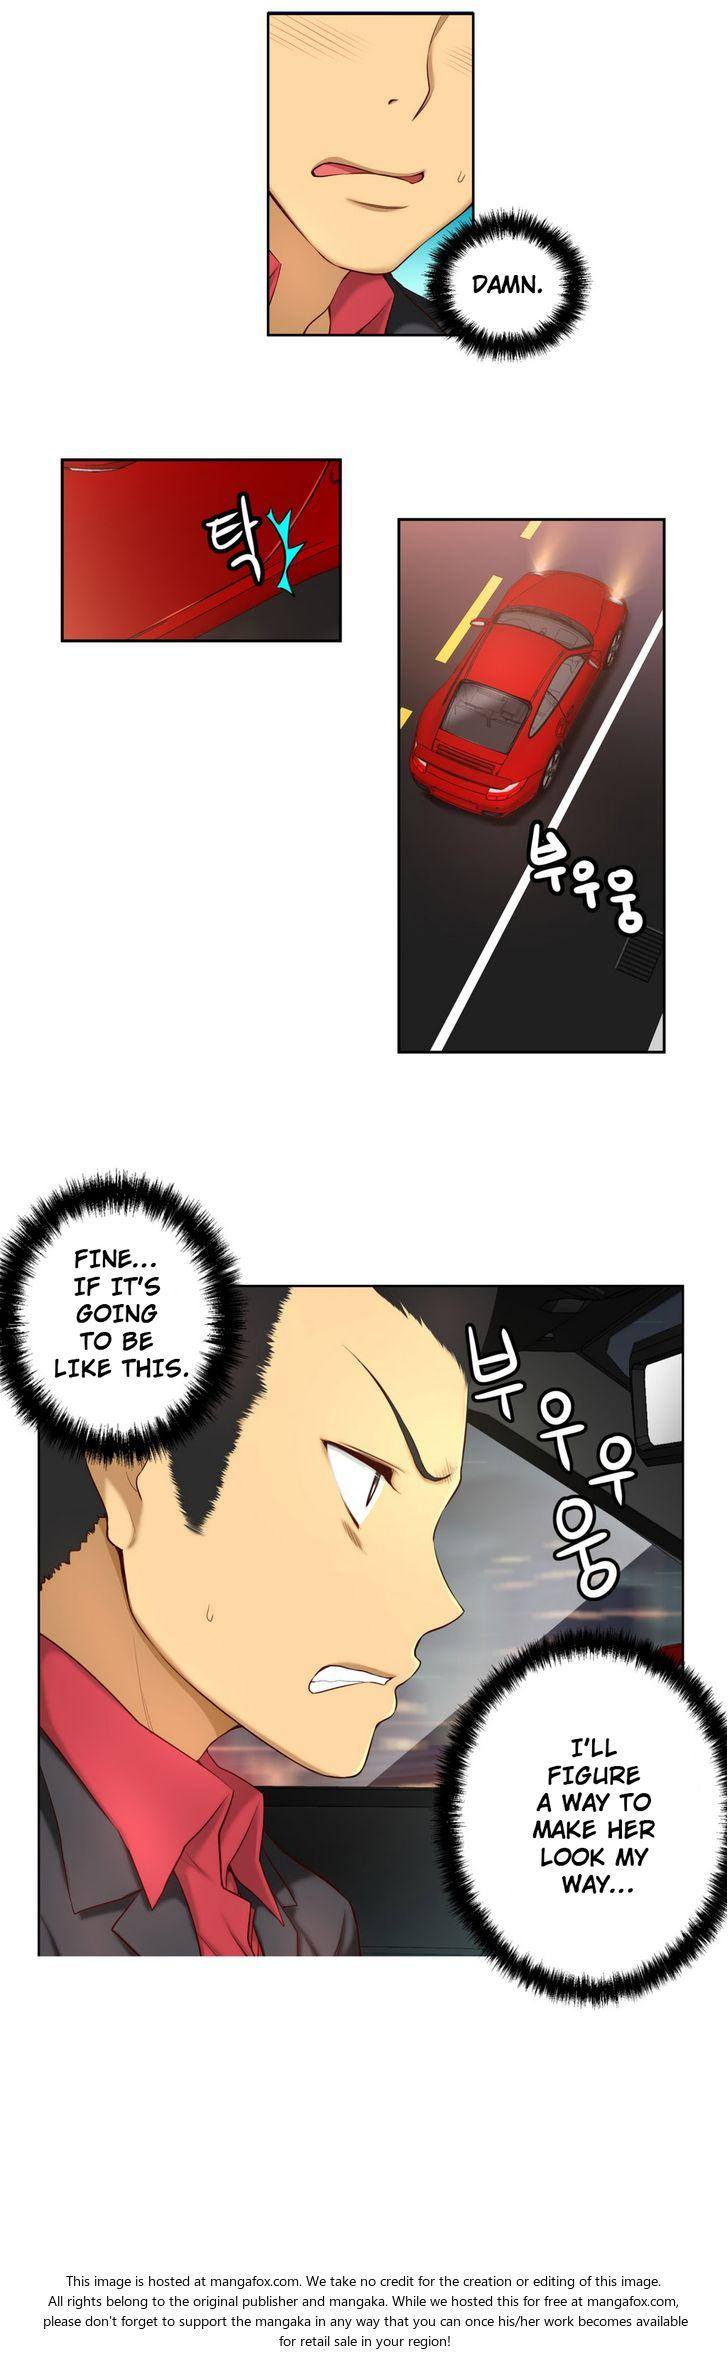 [Donggul Gom] She is Young (English) Part 1/2 706